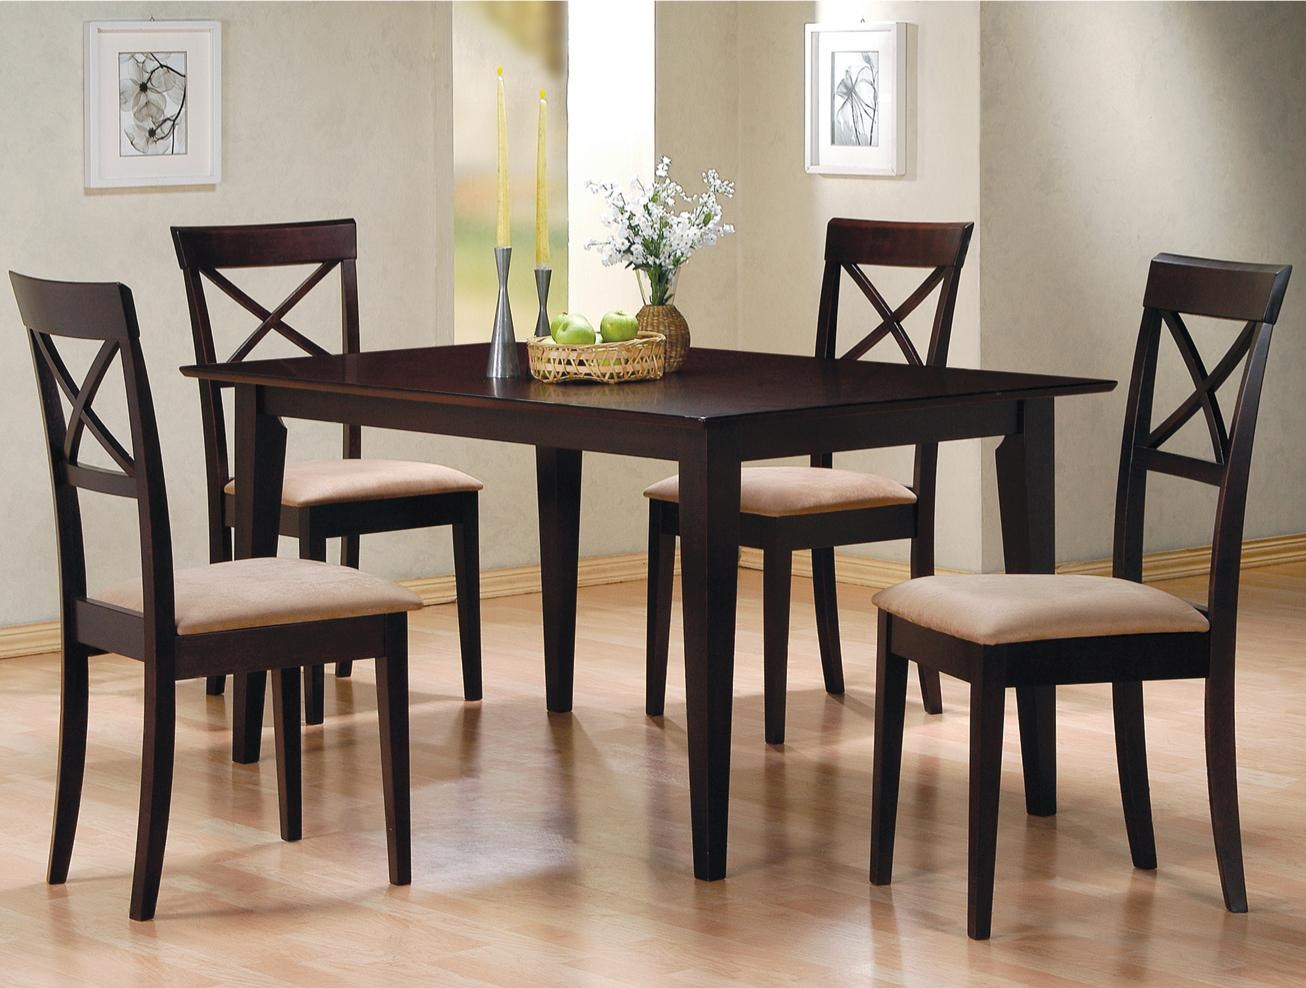 Coaster Mix U0026 Match 5 Piece Dining Set